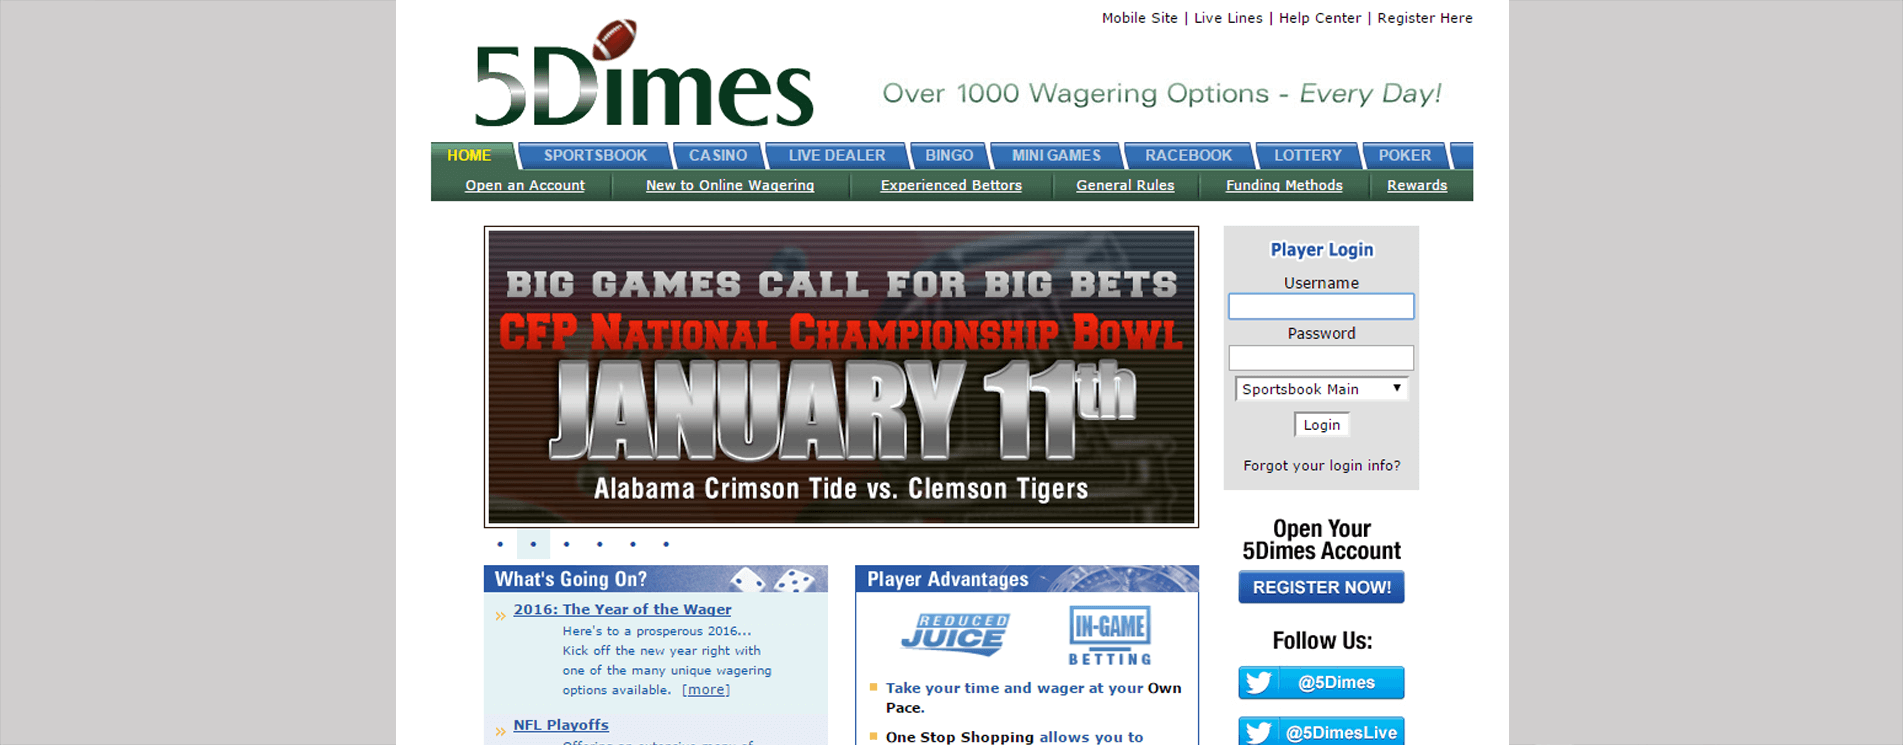 5dimes: top online betting sites reviews and best sports betting websites